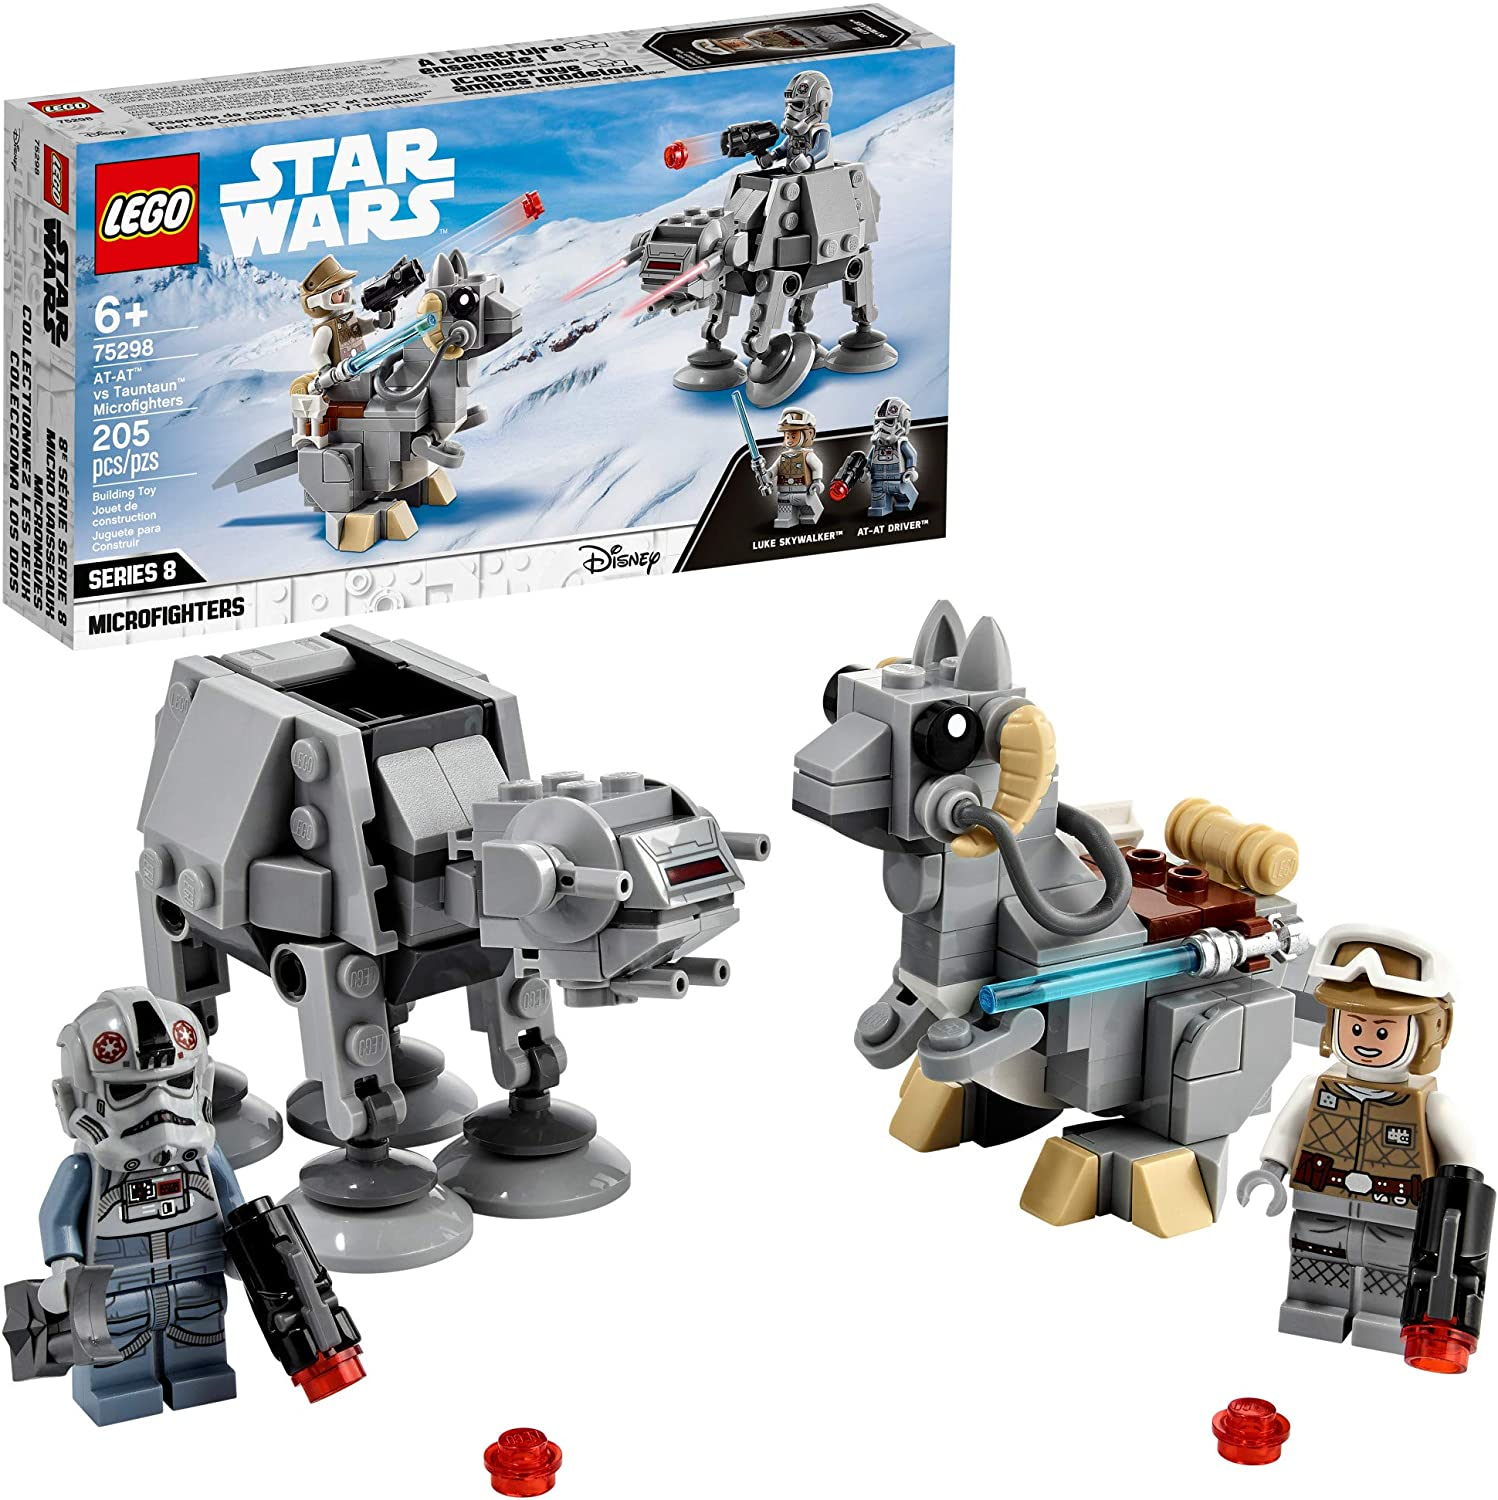 LEGO Star Wars  - AT-AT™ contra Microfighters Tauntaun 75298